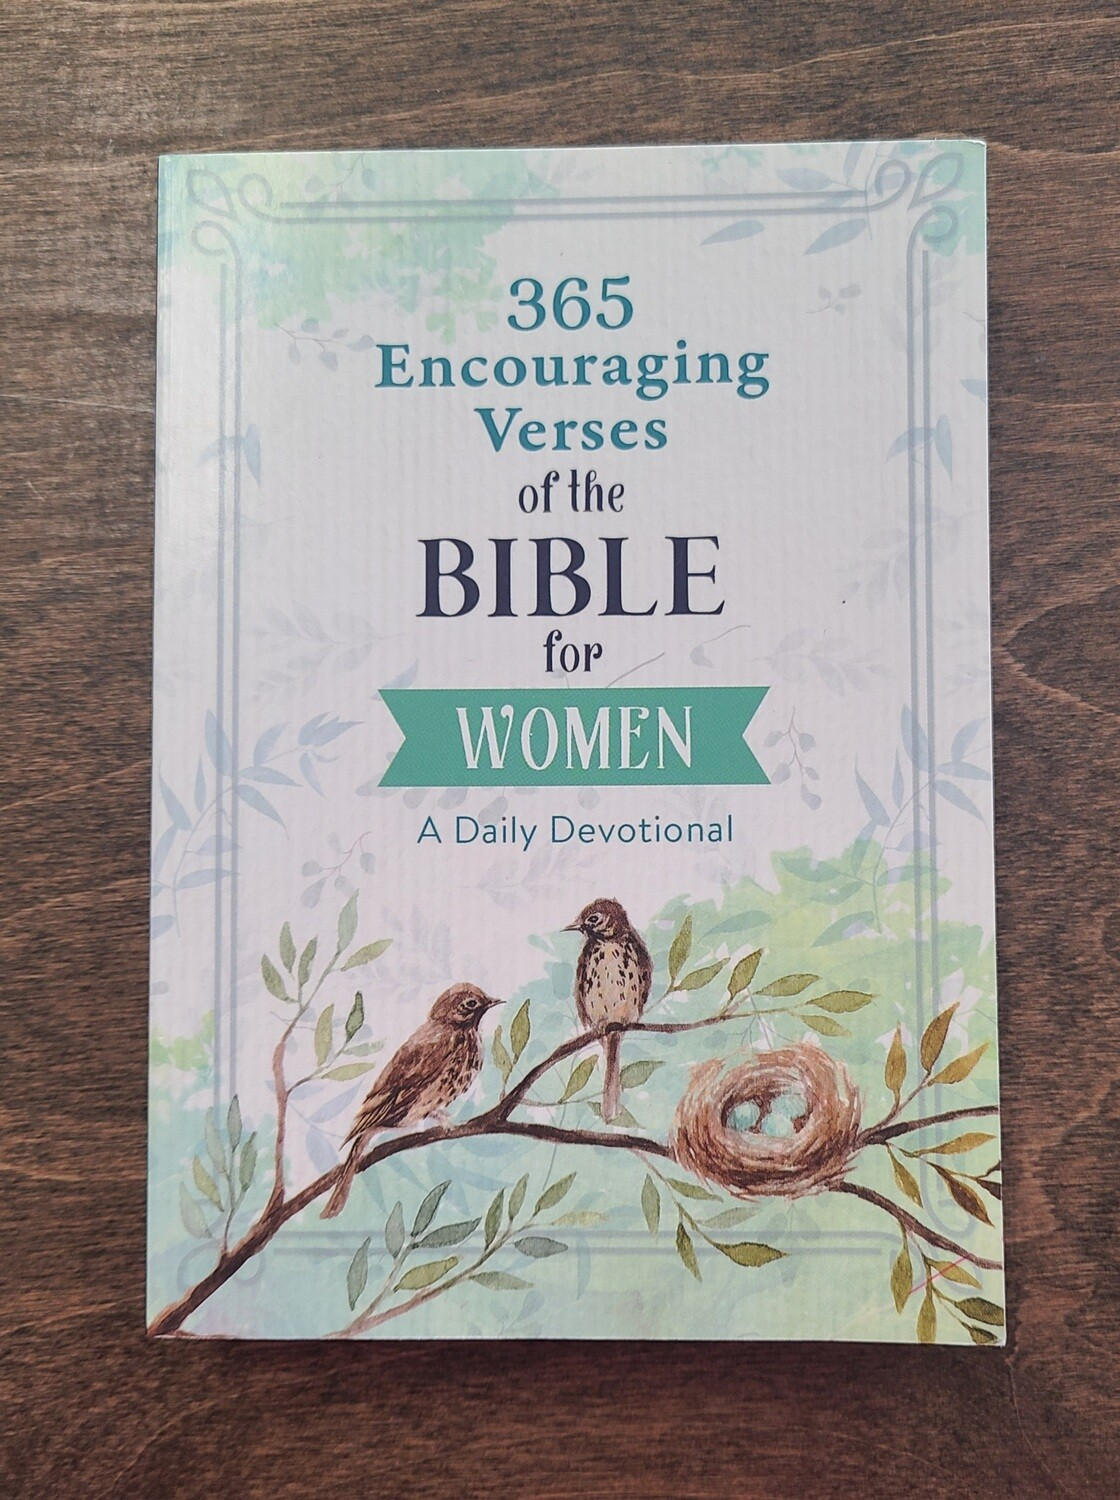 365 Encouraging Verses of the Bible for Women by Barbour Publishing, Inc.